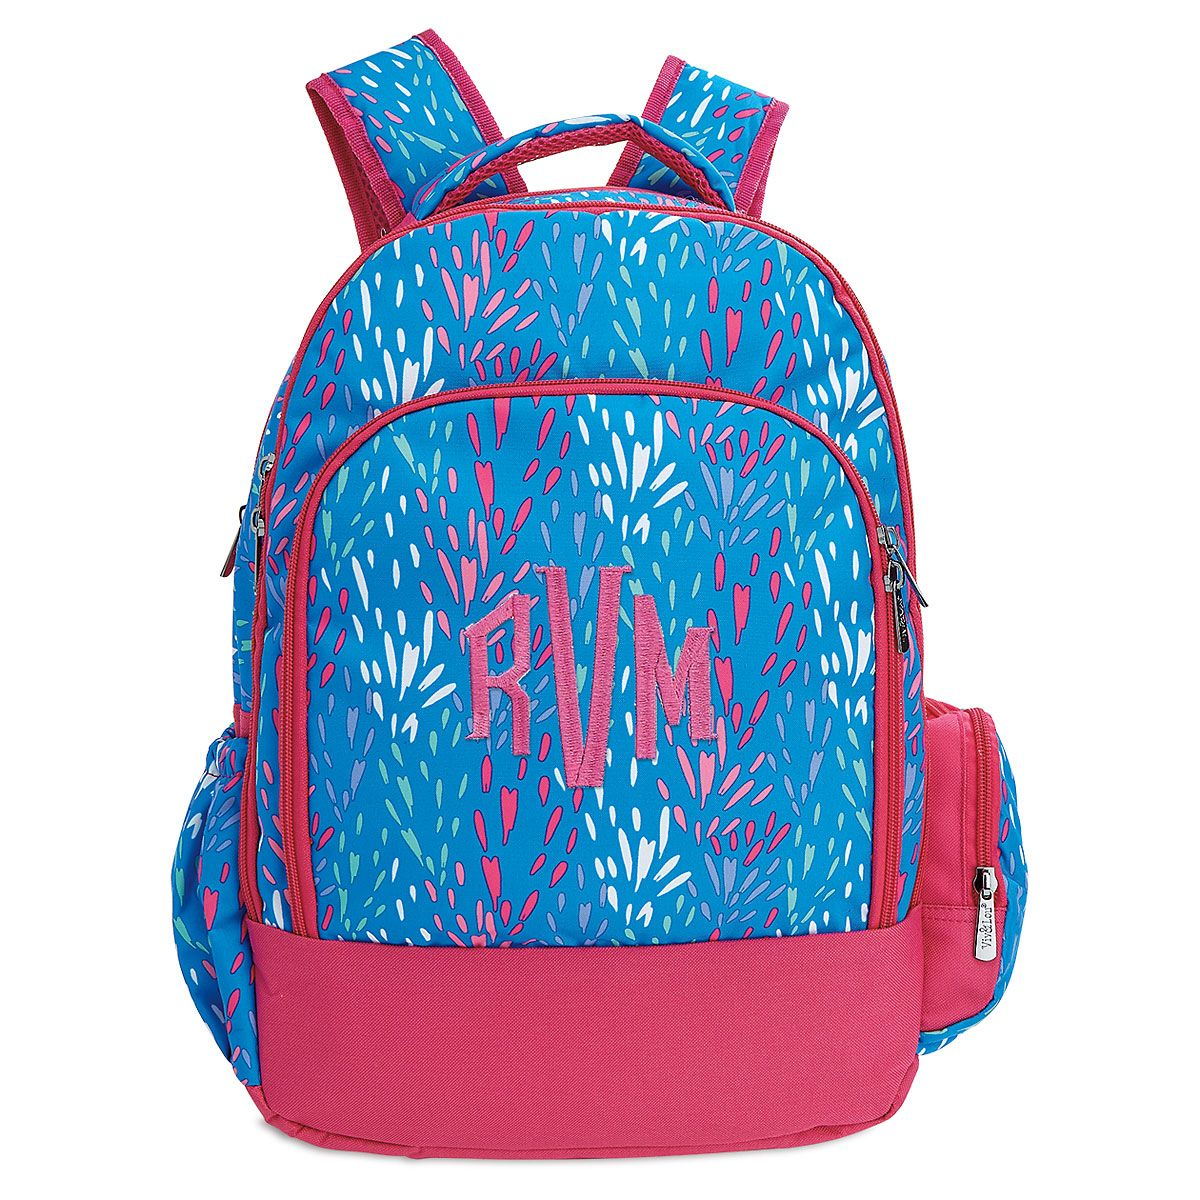 Personalized Sparktacular Backpack